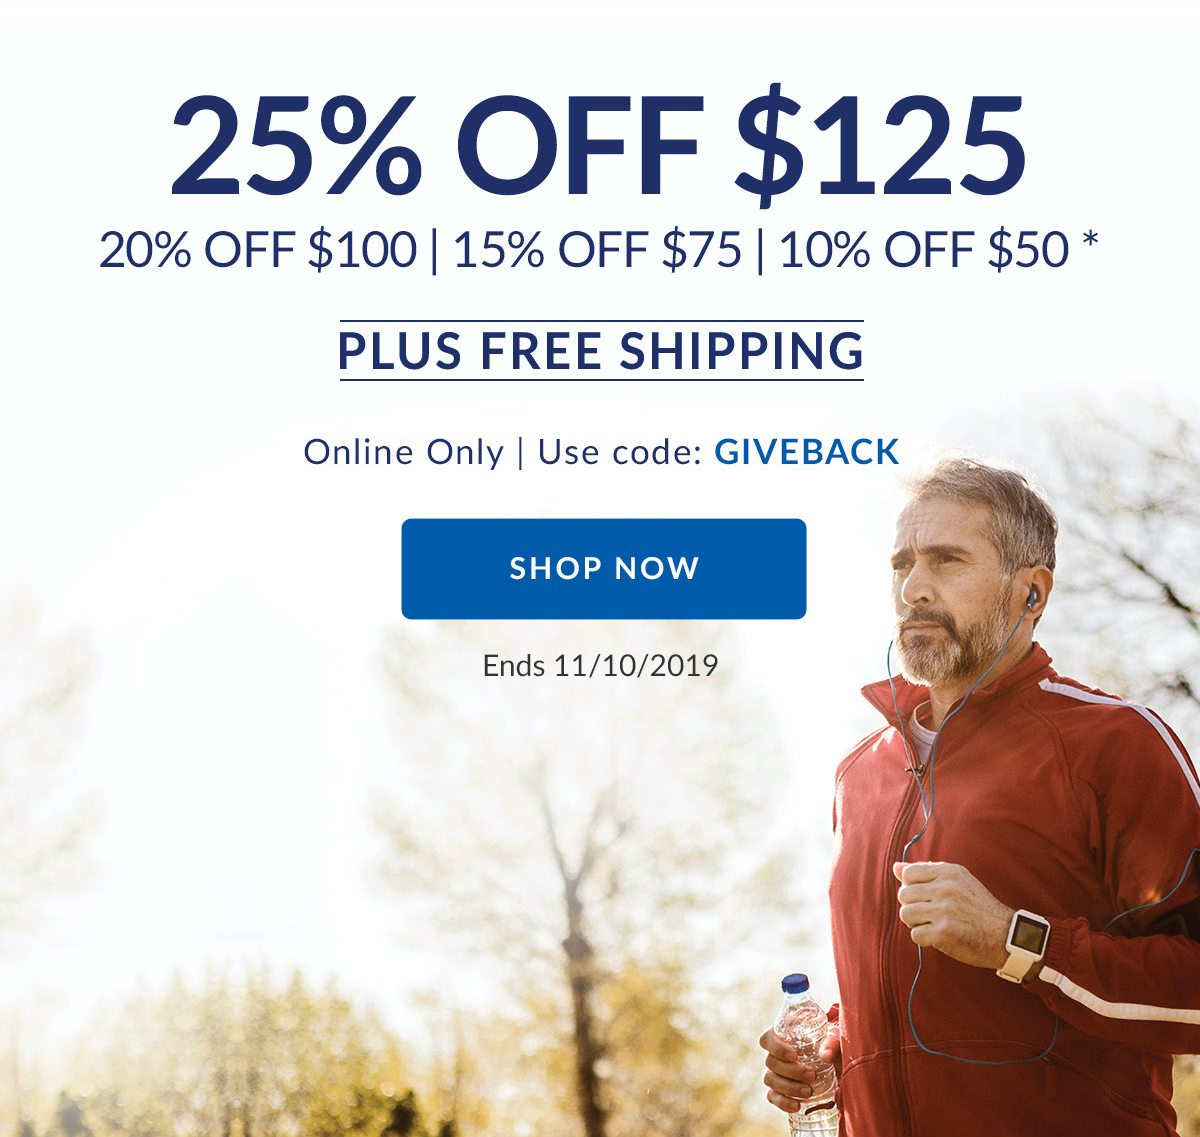 25% OFF $125   20% OFF $100   15% OFF $75   10% OFF $50 *   PLUS FREE SHIPPING   Online Only   Use code: GIVEBACK   SHOP NOW   Ends 11/10/2019